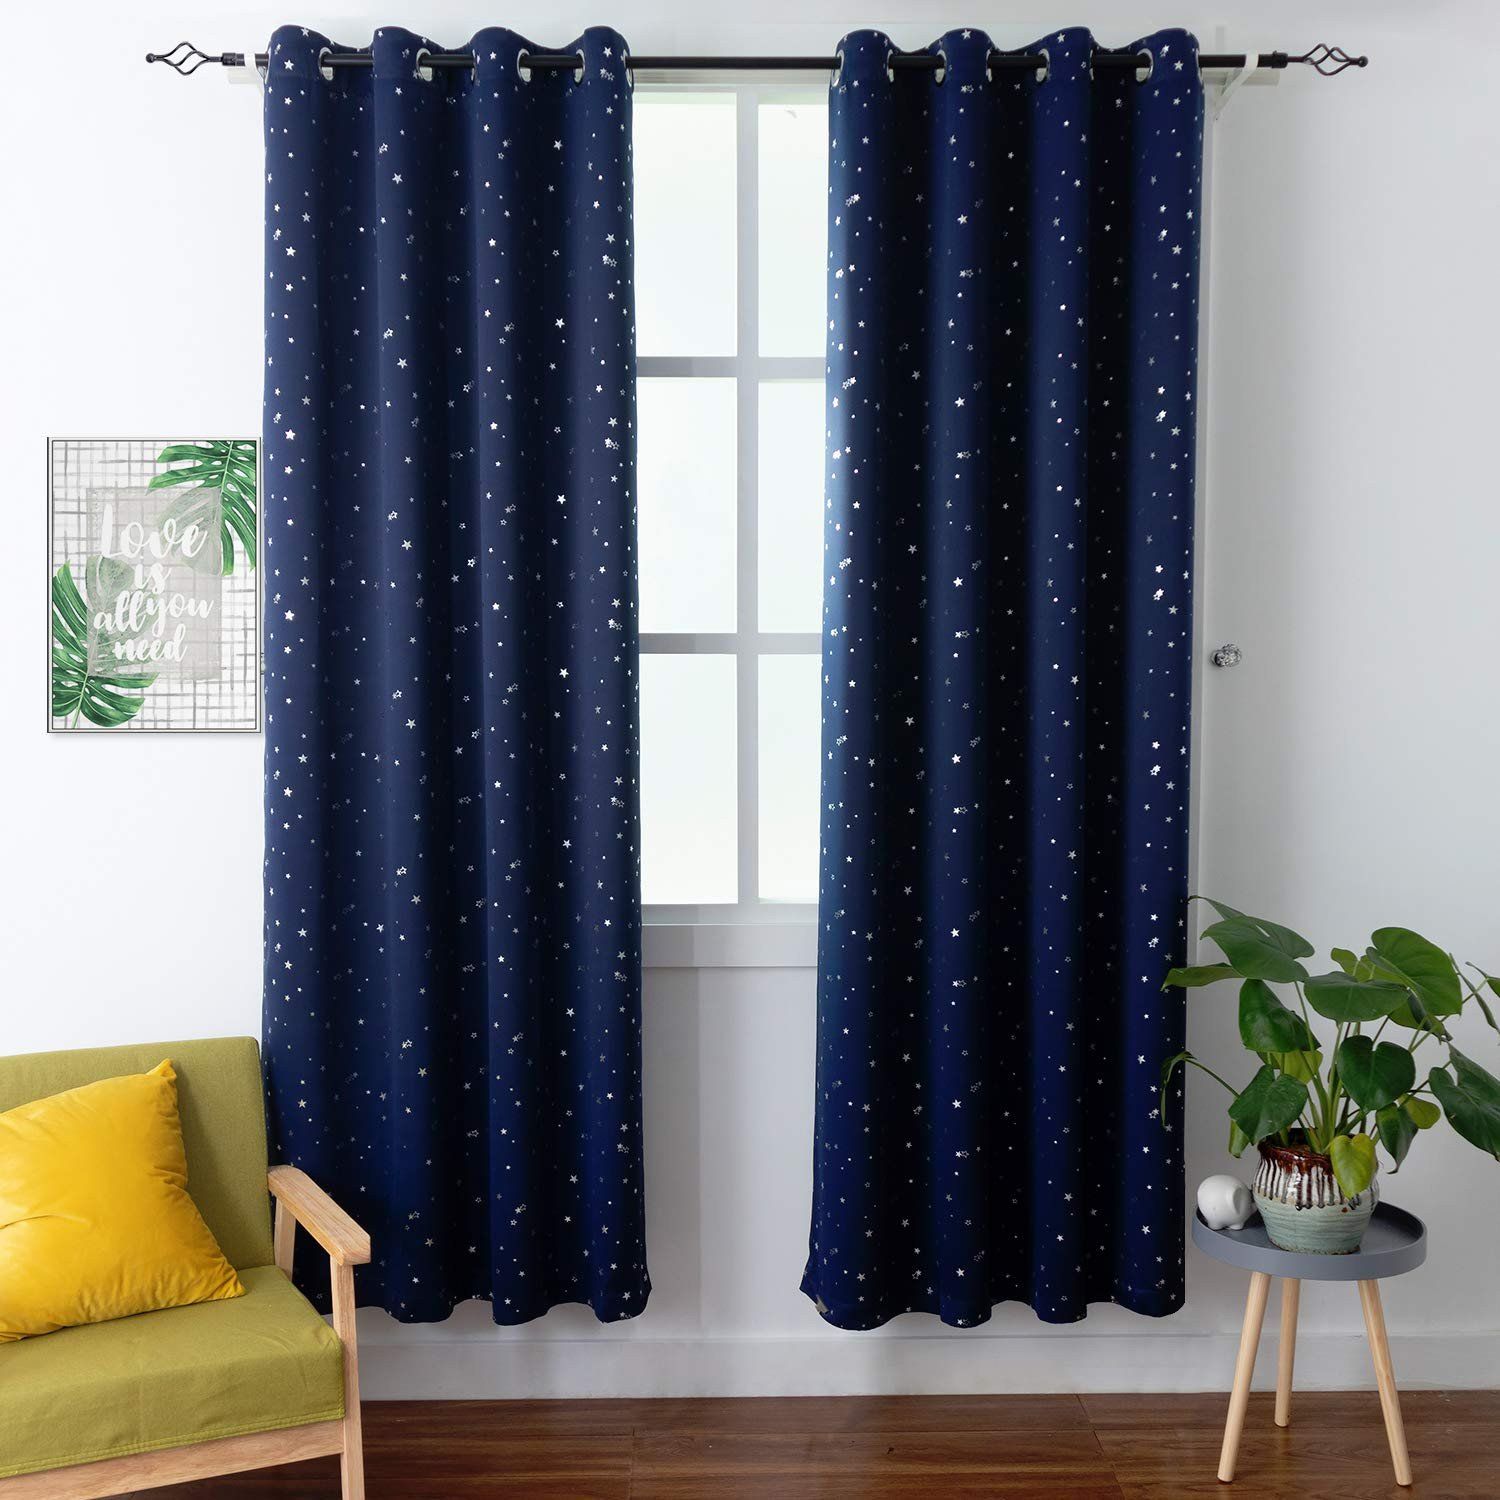 Navy Blue Curtains for Bedroom New Bgment Kids Blackout Curtains for Bedroom Grommet thermal